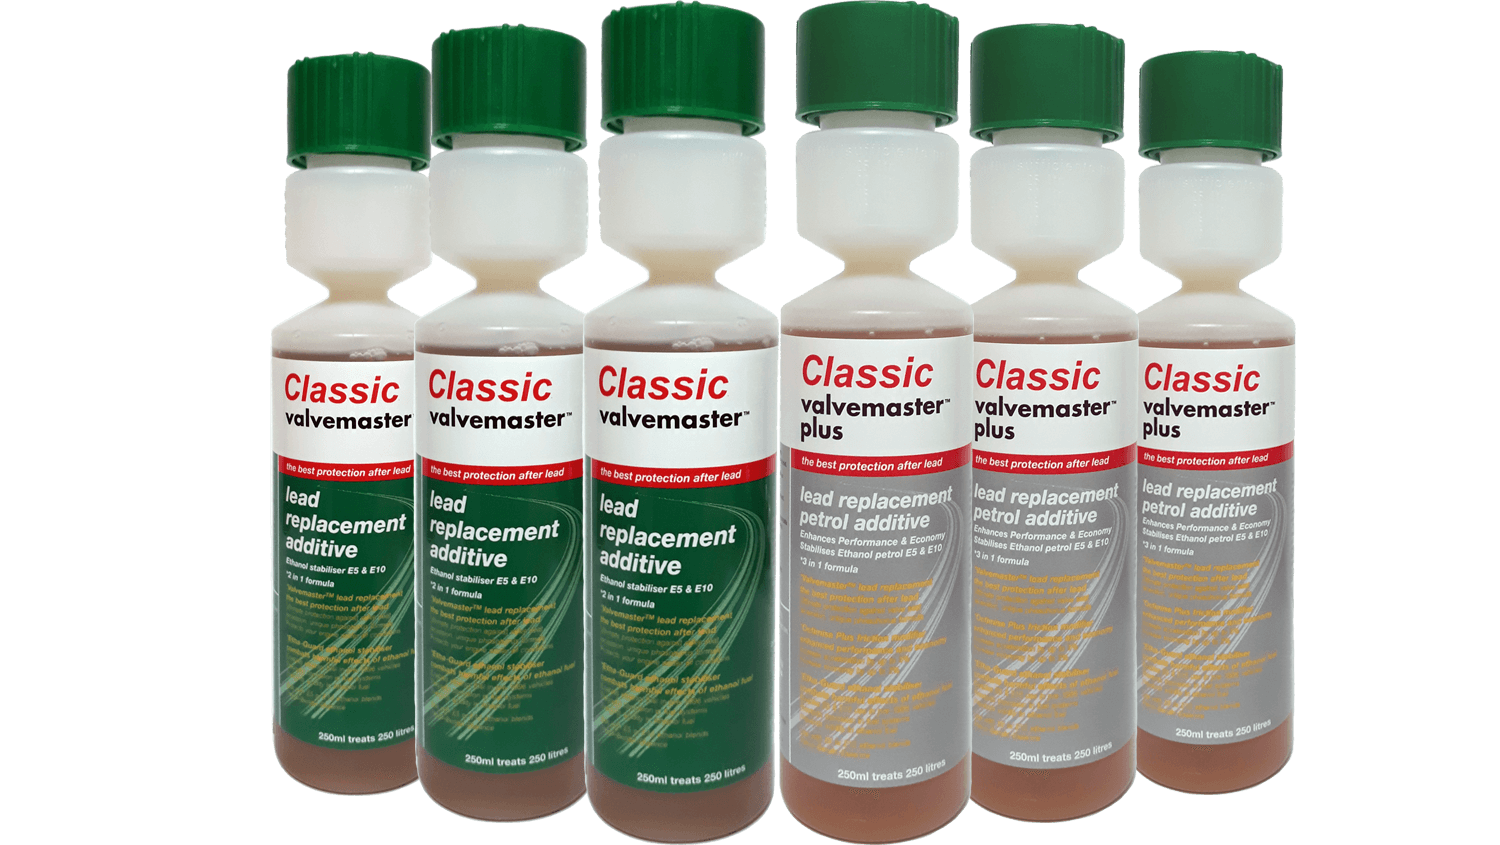 Classic Valvemaster and Classic Valvemaster Plus lead replacement additives